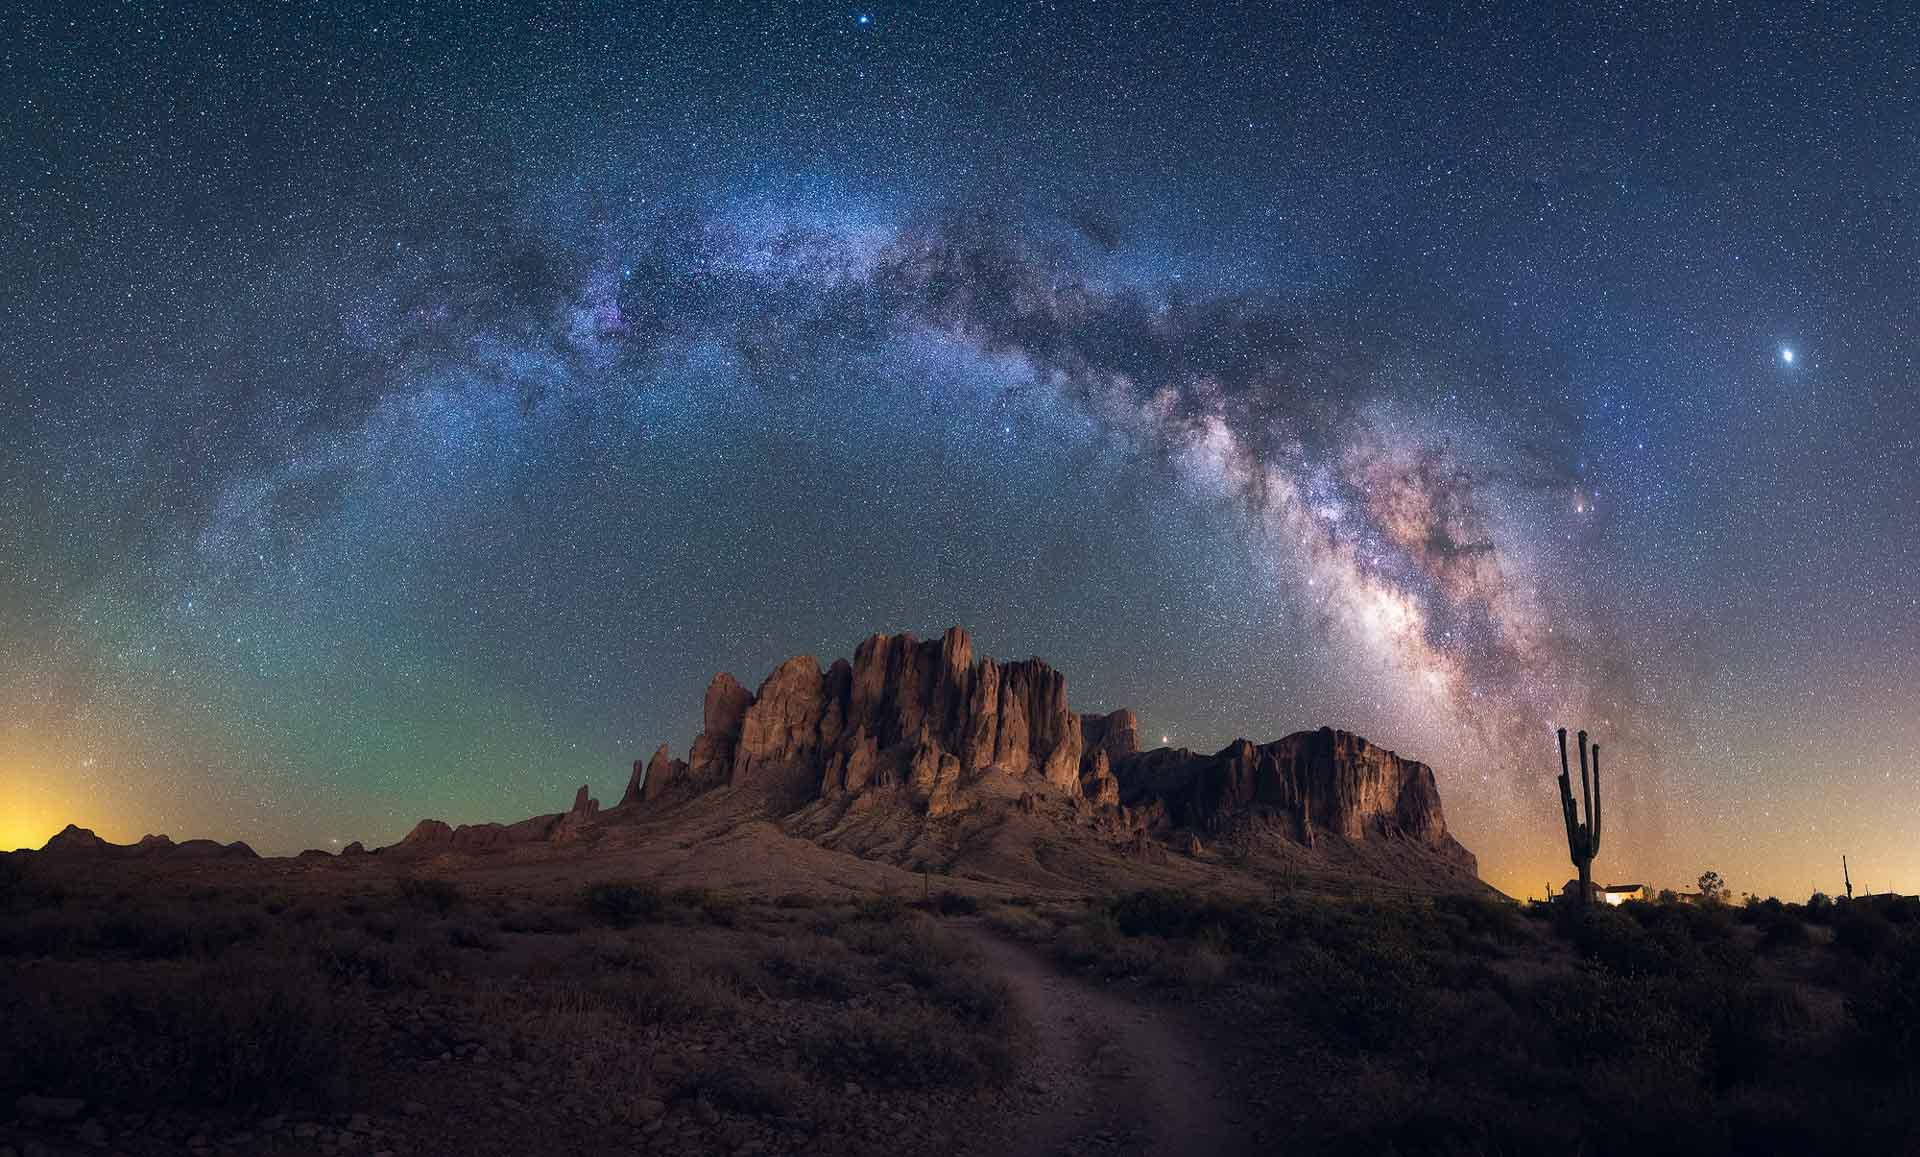 Vía Láctea Superstition Mountains Arizona Estados Unidos